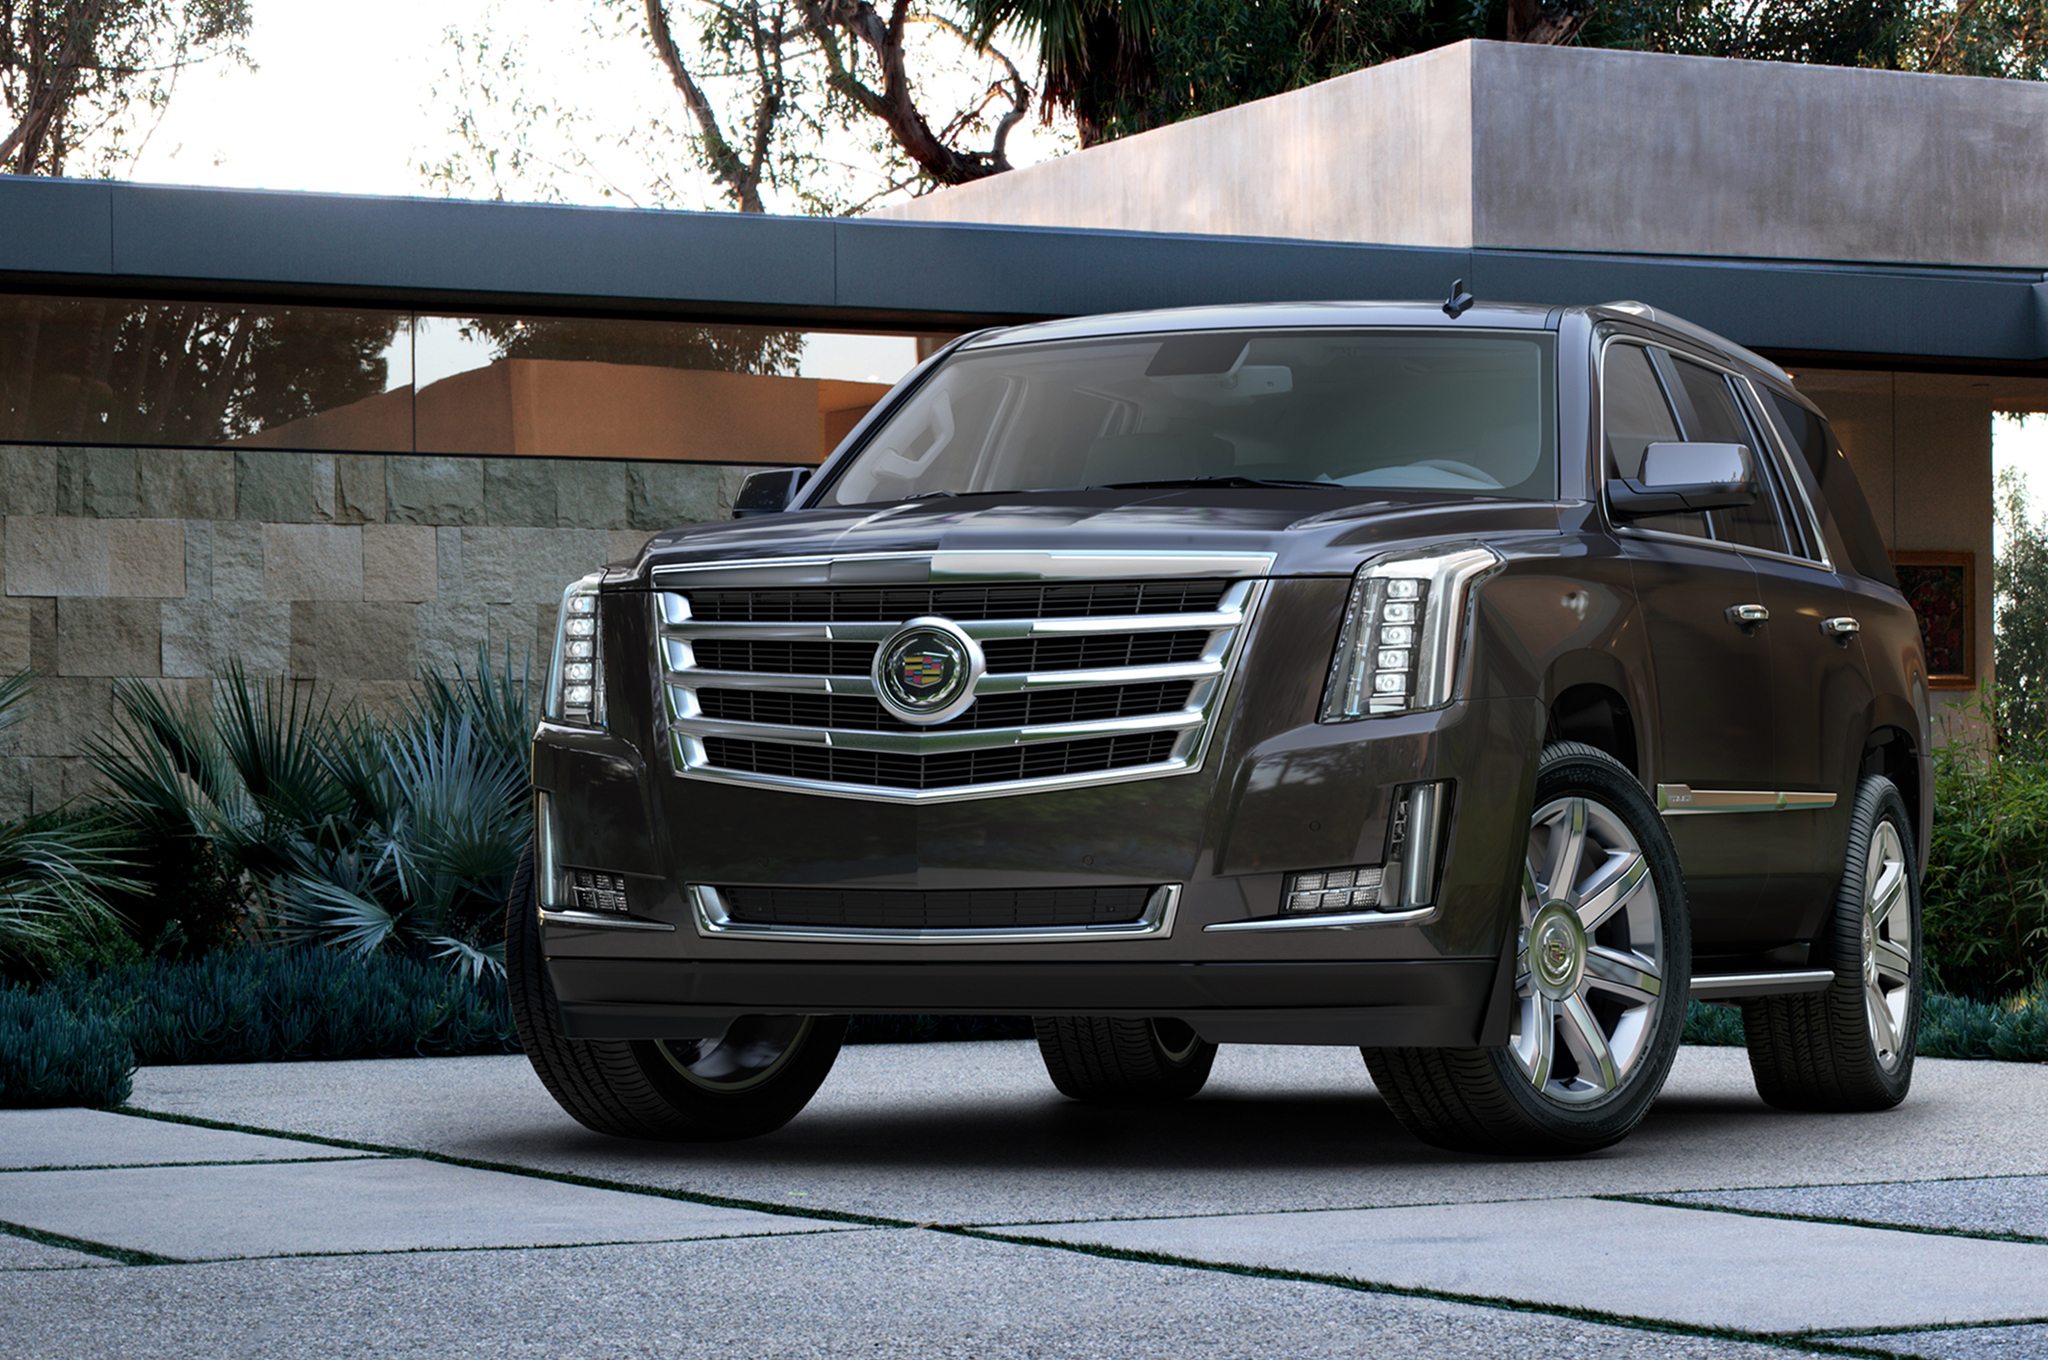 Full 2015 Cadillac Escalade Configurator Live, ESV Tops Out at $92,810